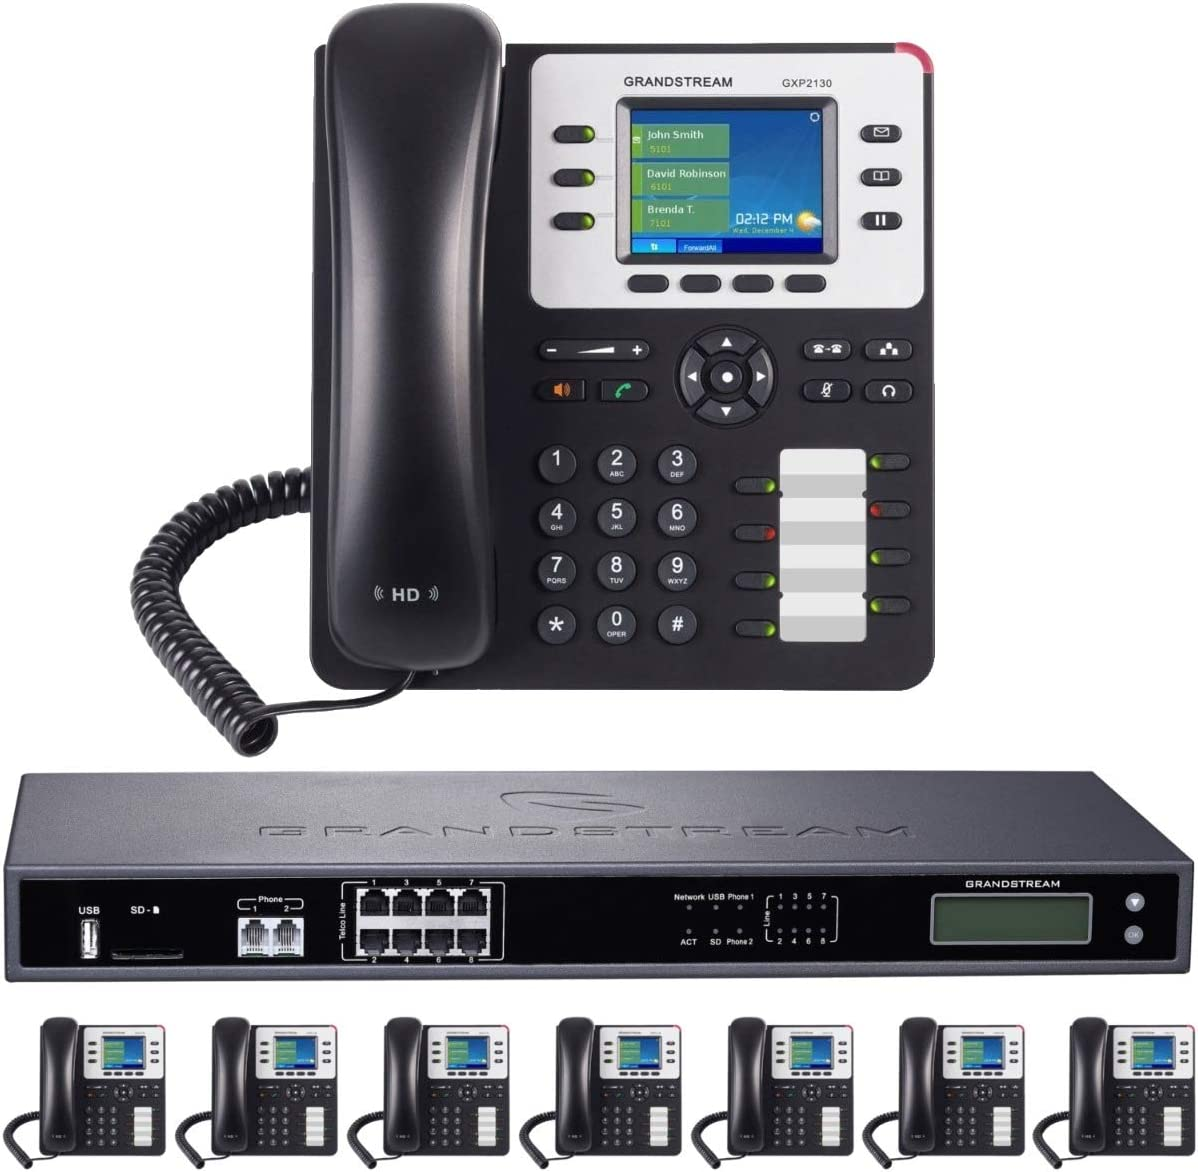 8-Line Business Phone System: Enhanced Pack with Auto Attendant, Voicemail, Cell & Remote Phone Extensions, Call Recording & 1 Year Free Mission Machines Phone Service (8 Phone Bundle)